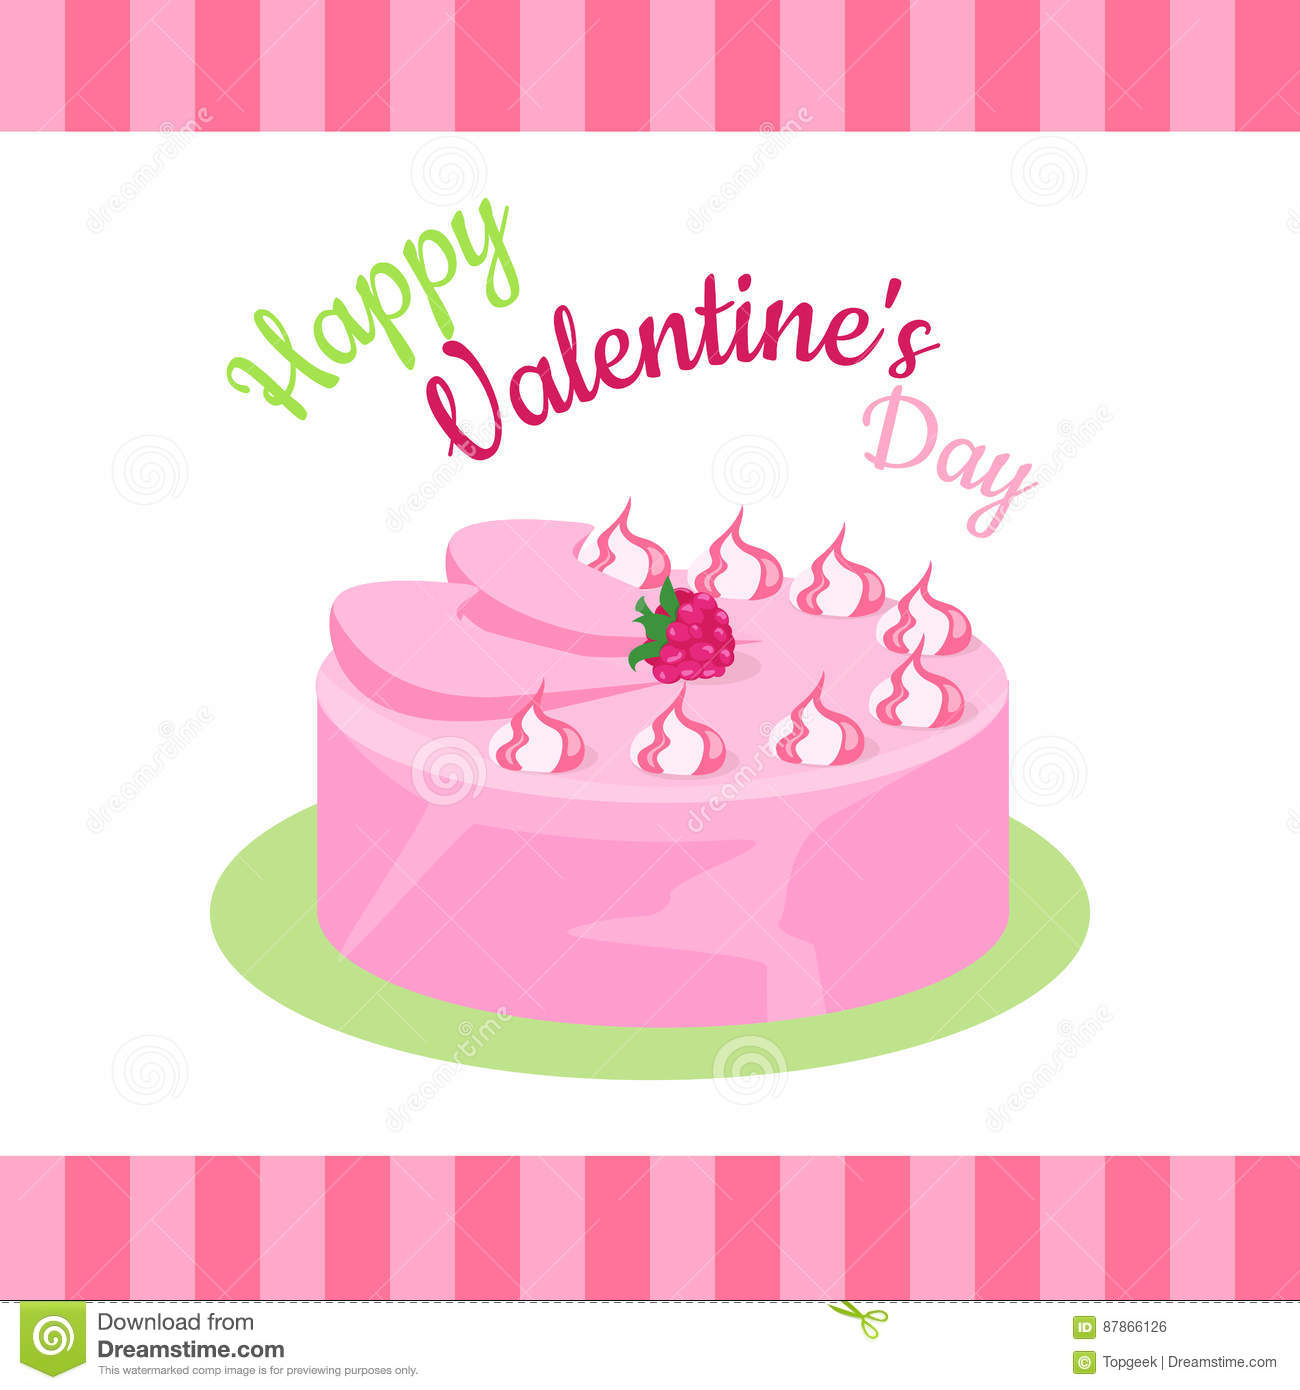 Amazing Happy Valentines Day Cake With Strawberries Isolated Stock Vector Birthday Cards Printable Riciscafe Filternl